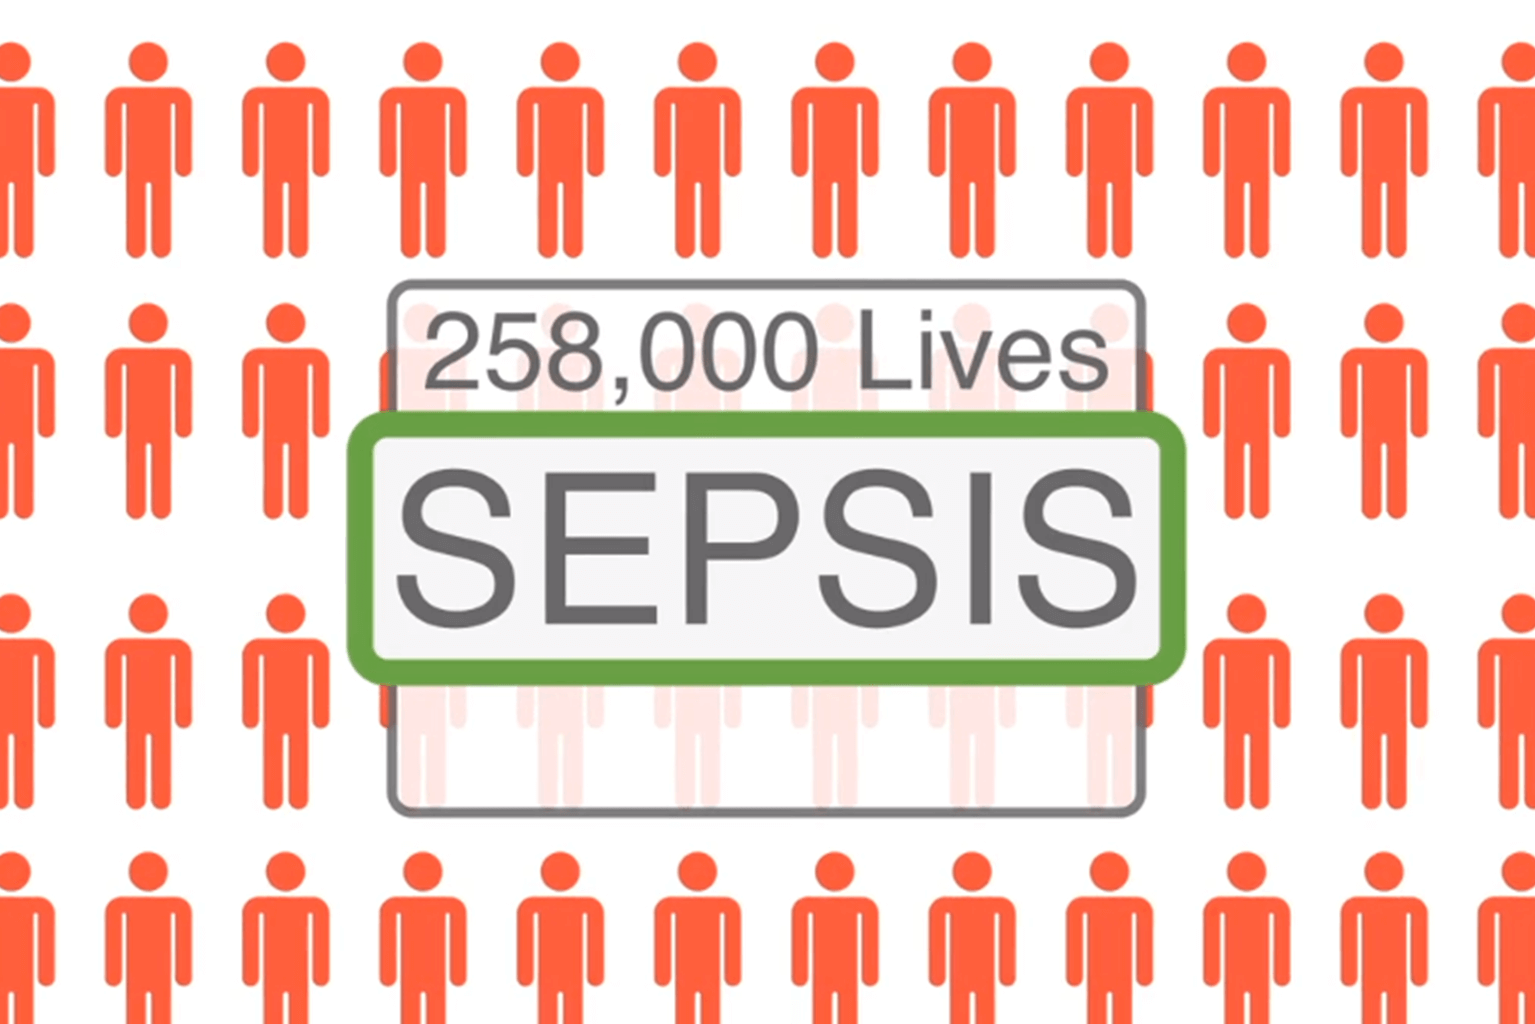 sepsis-video-258000-lives-lost-to-sepsis